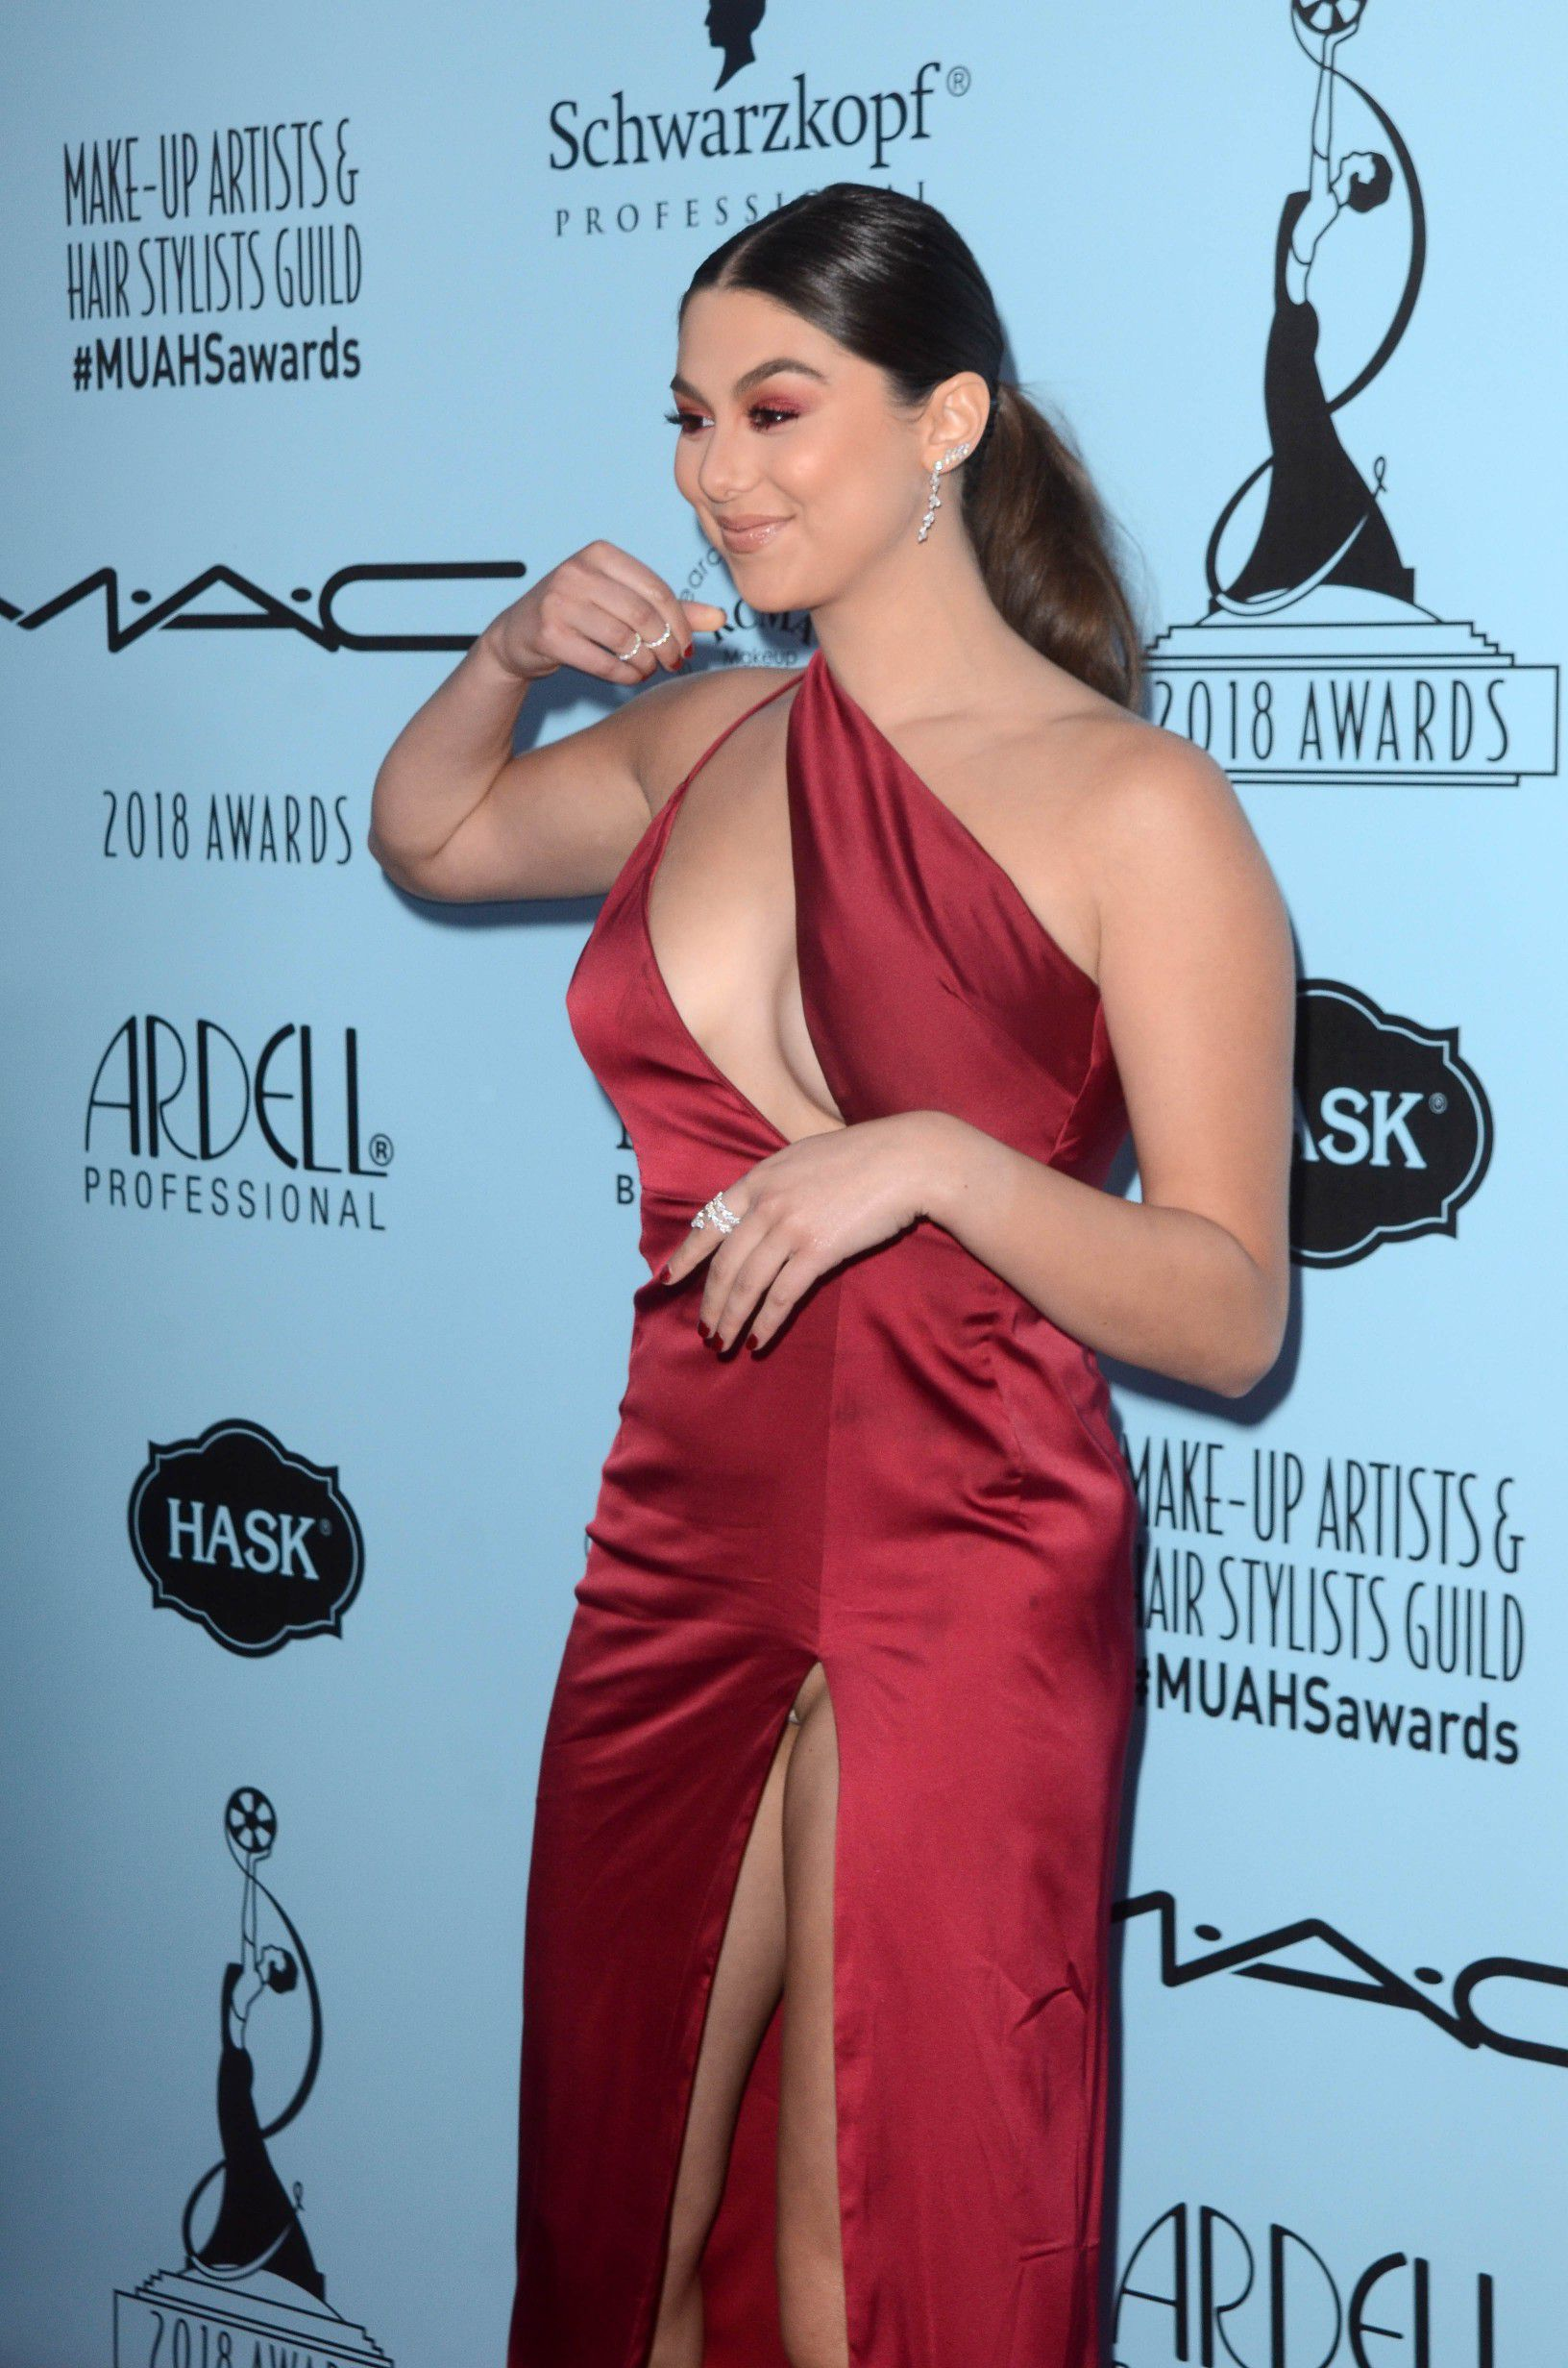 kira-kosarin-panty-upskirt-at-2018-make-up-artists-and-hair-stylists-guild-awards-in-la-8951